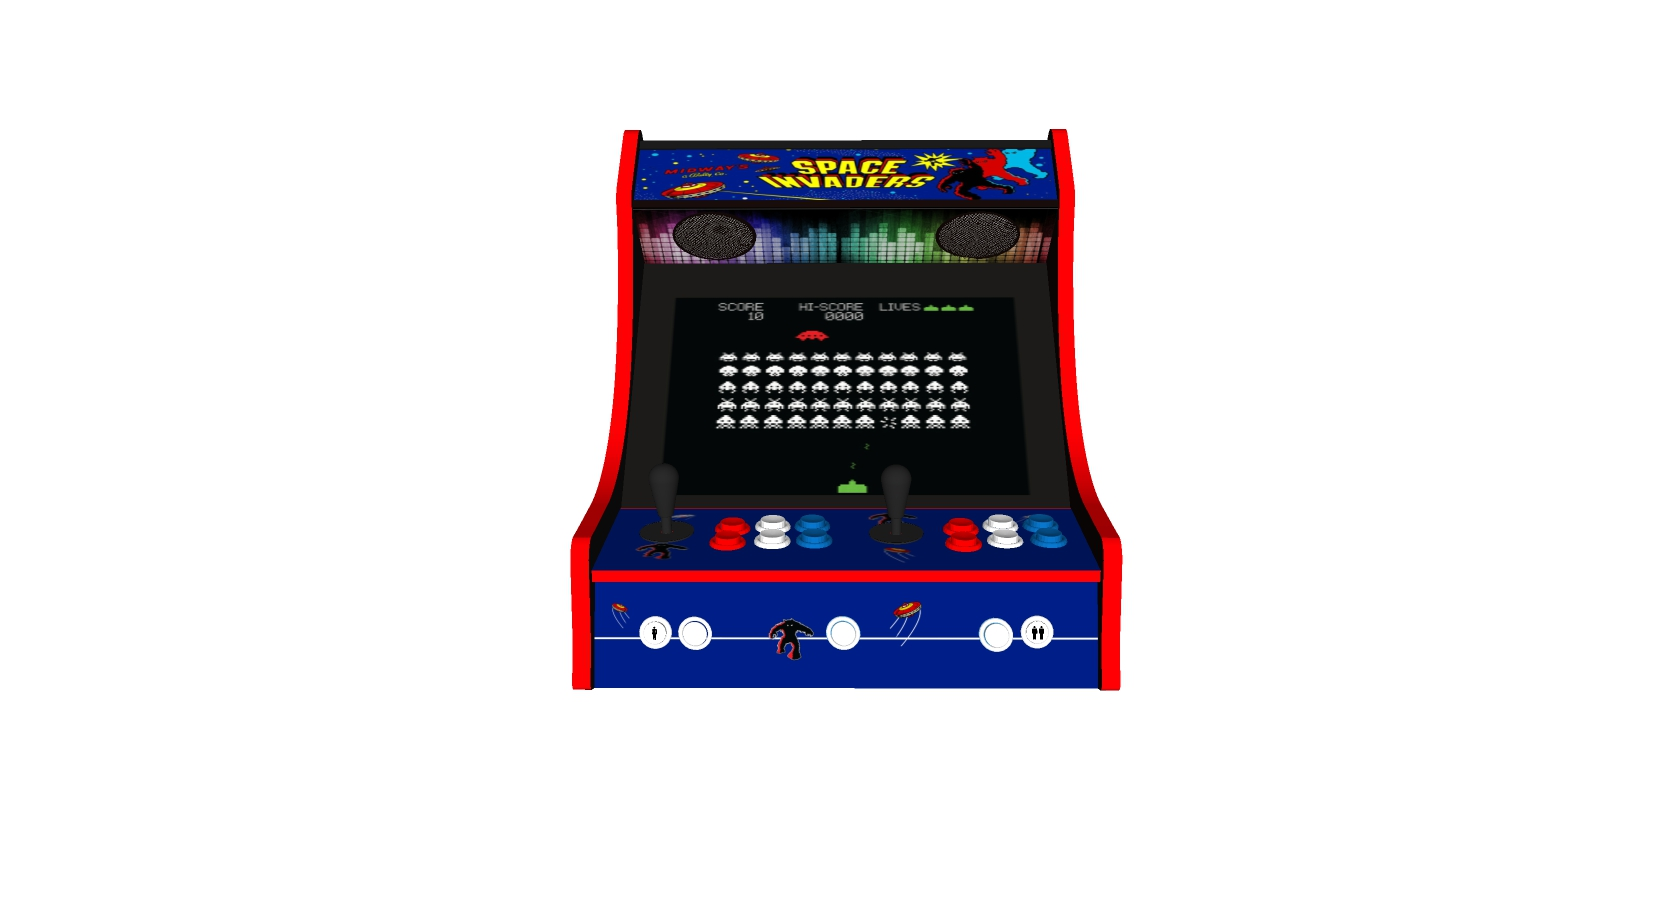 Classic Bartop Arcade - Space Invaders theme RetroPI with 15,000 games - black bezel - middle